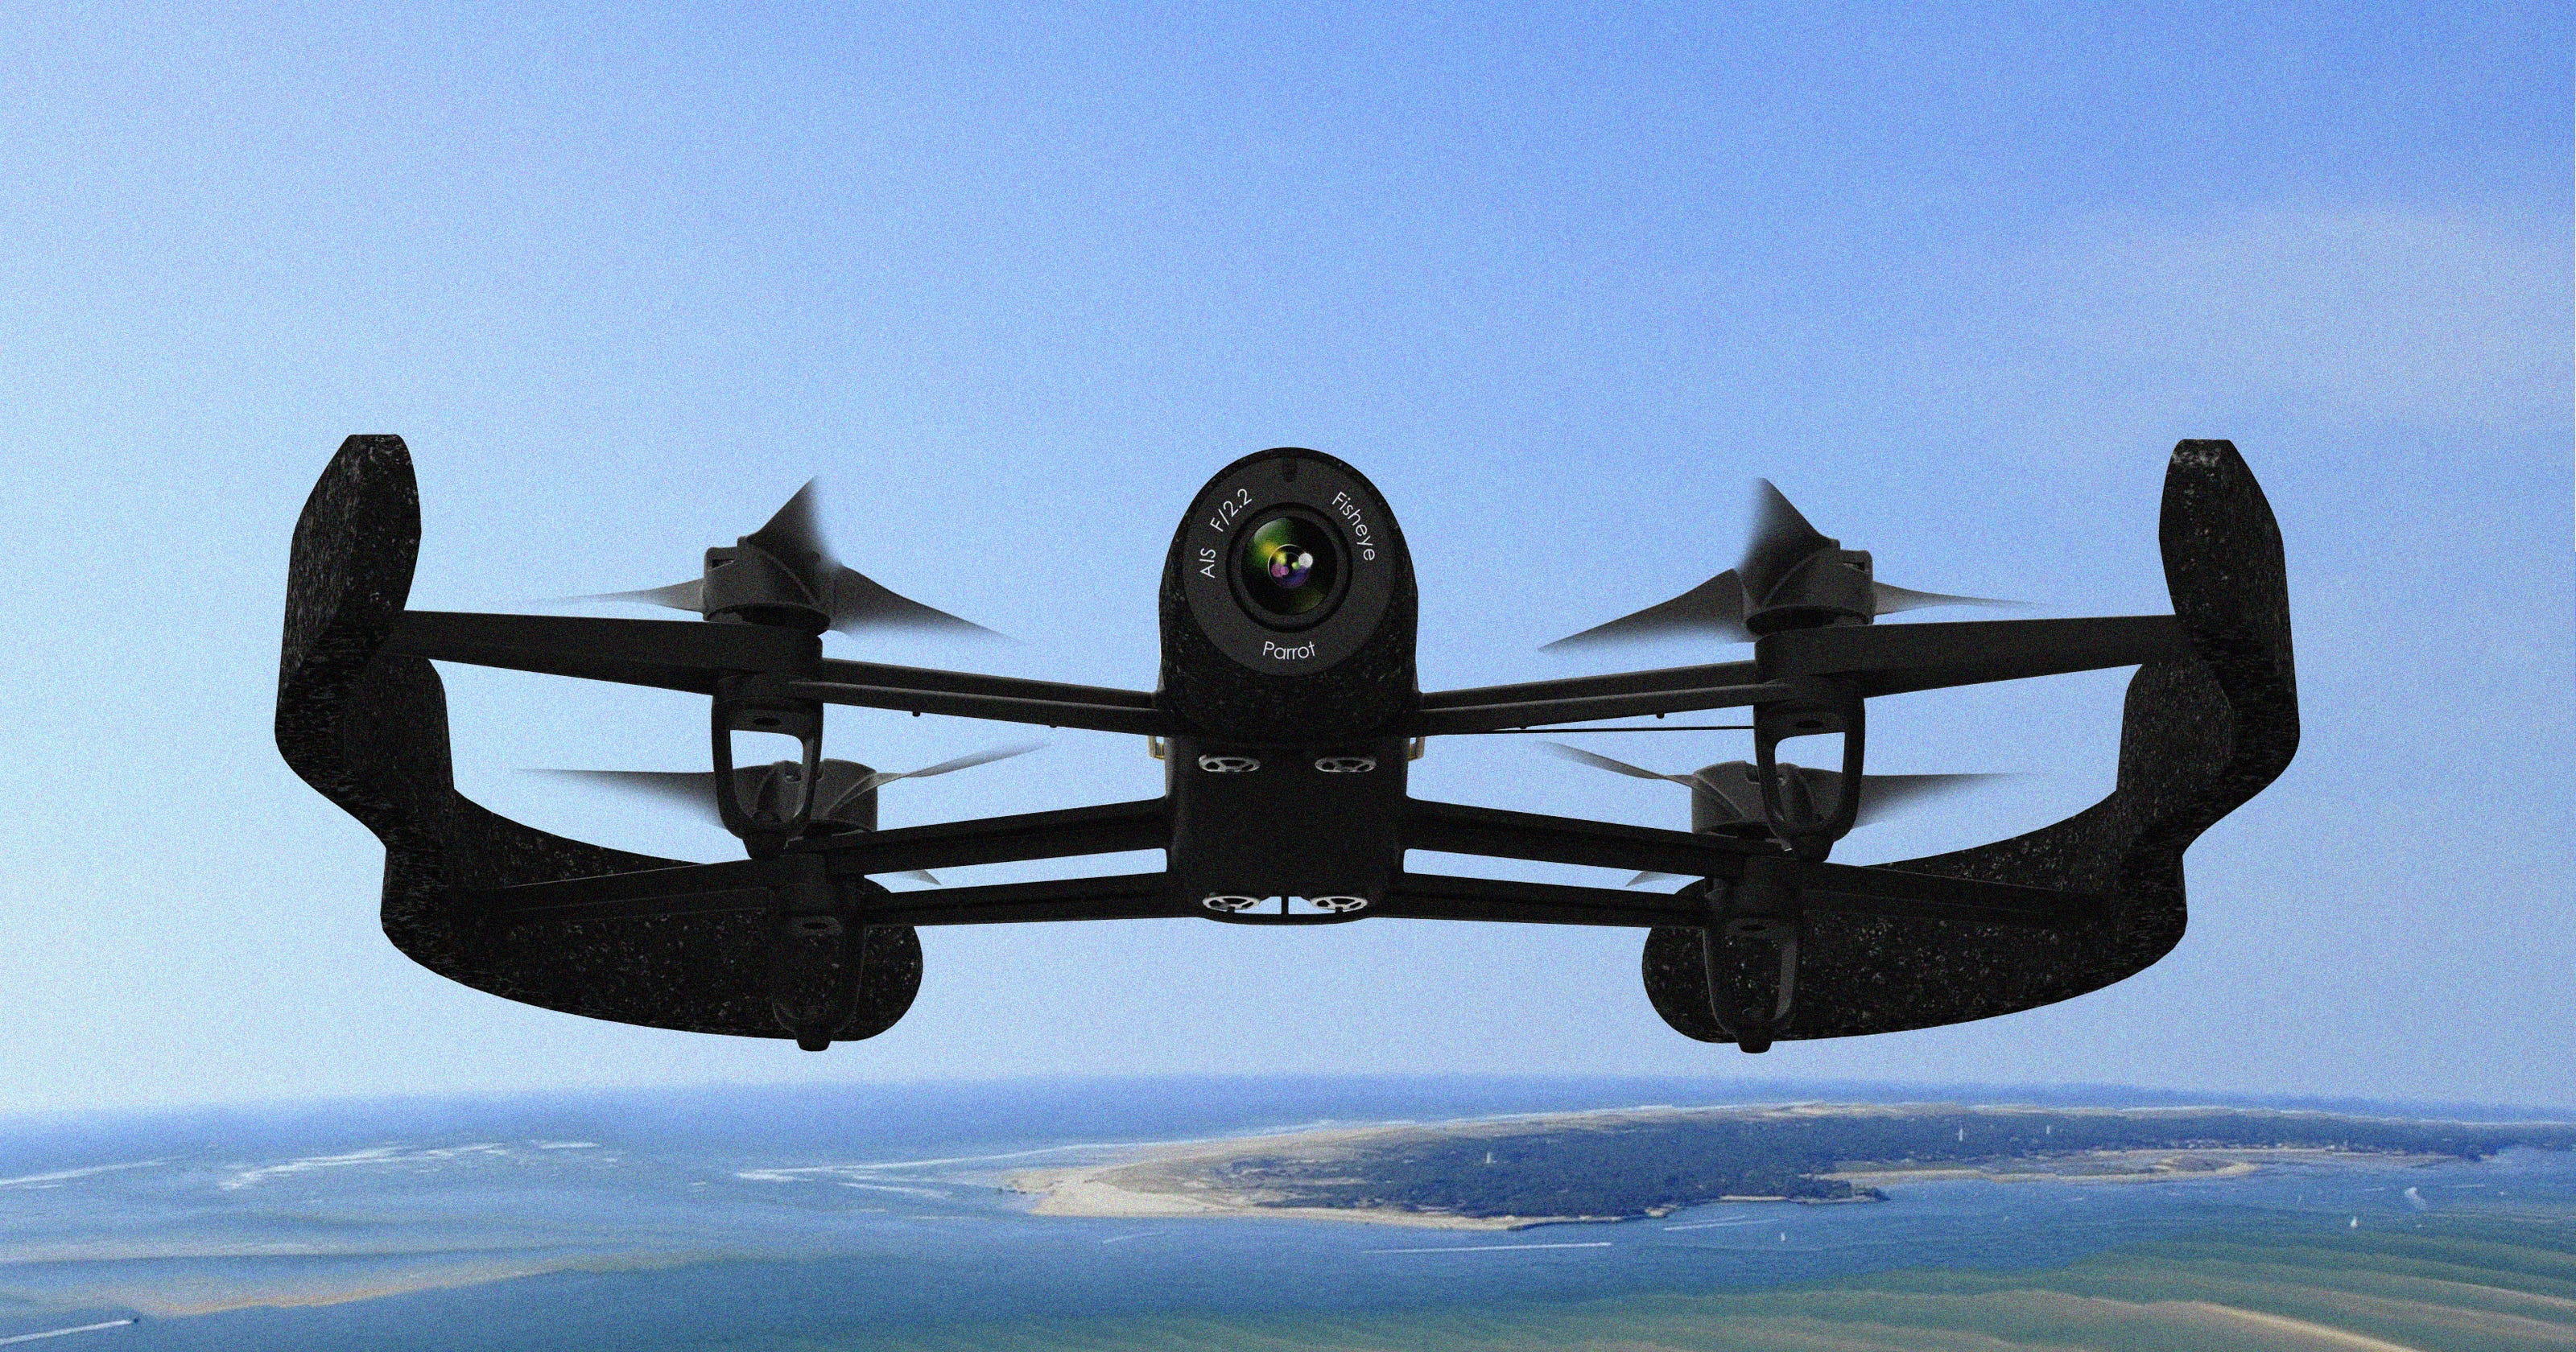 Parrot's new Bebop drone takes flight with HD video